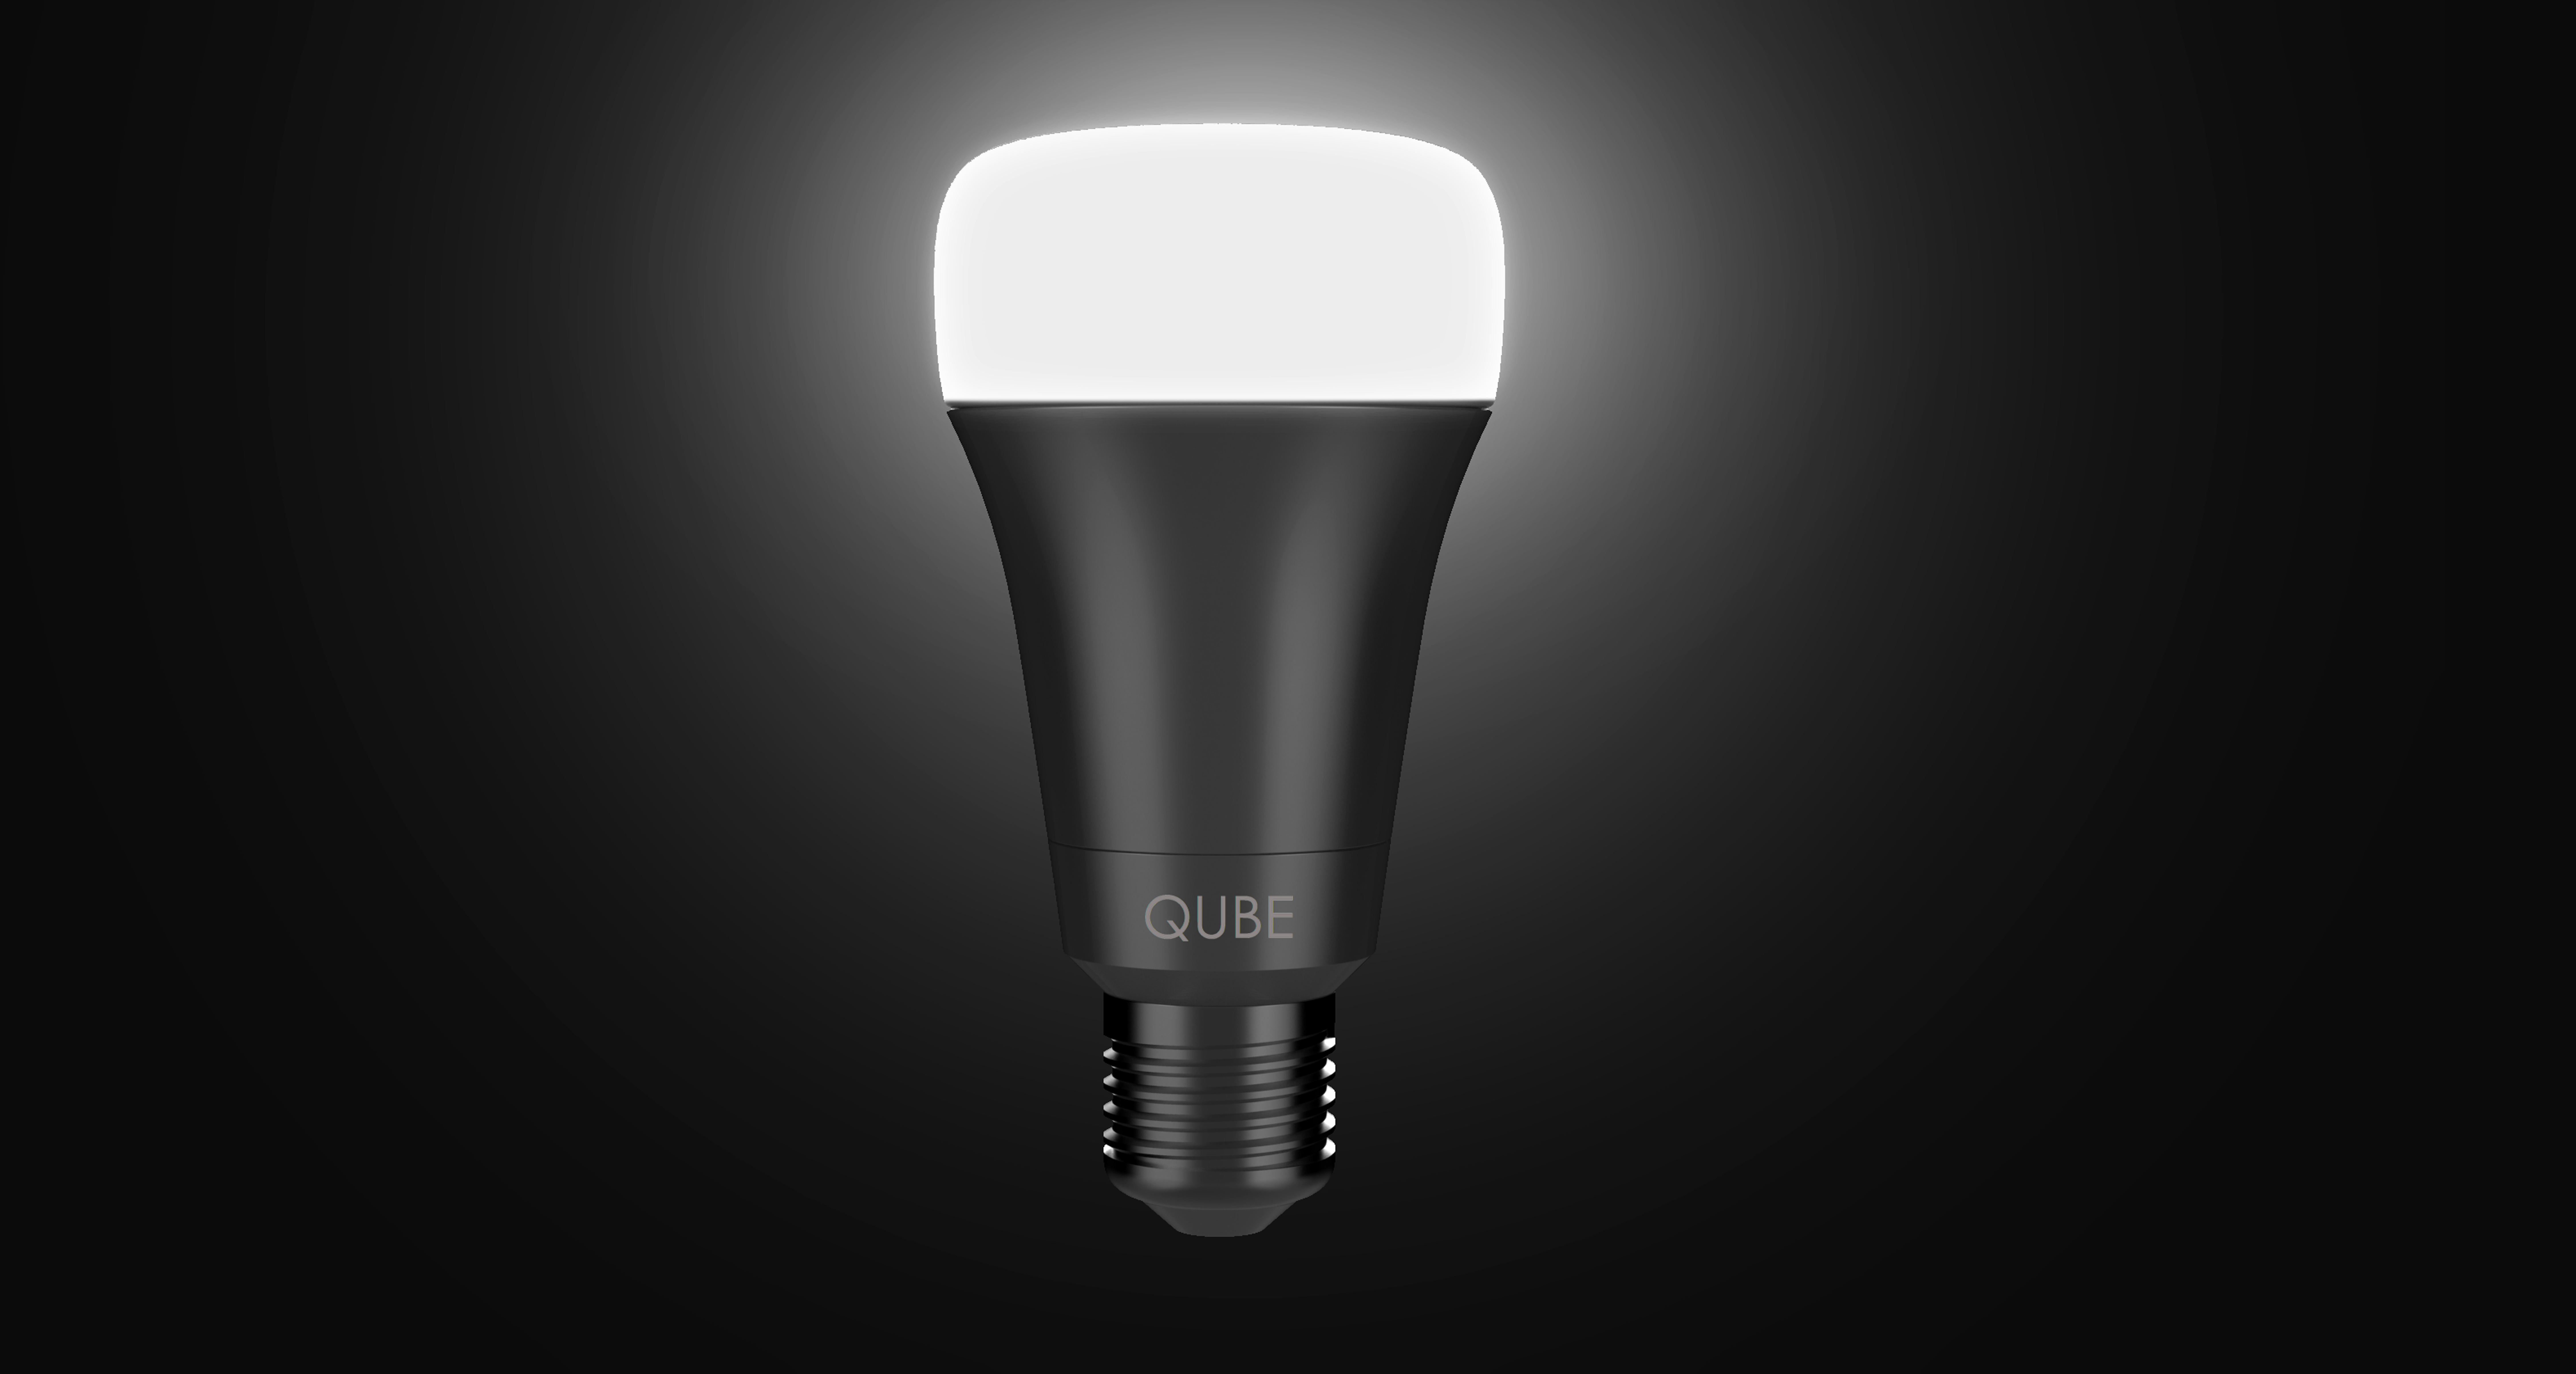 Qube Smart Bulb Heads To Indiegogo As